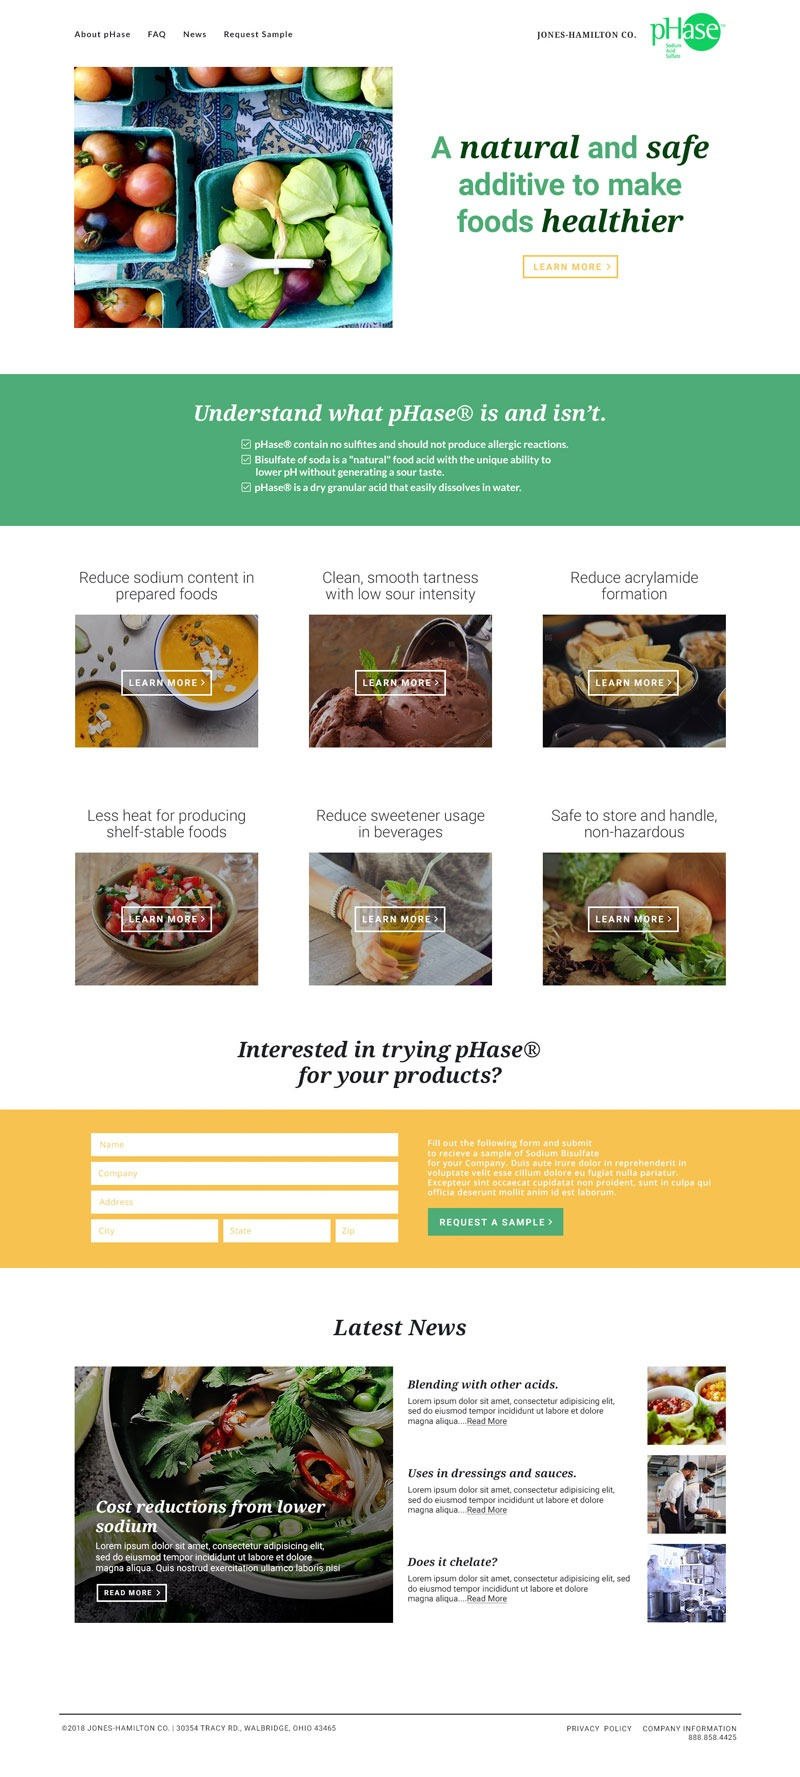 Mockup for informational B2B food additive website.